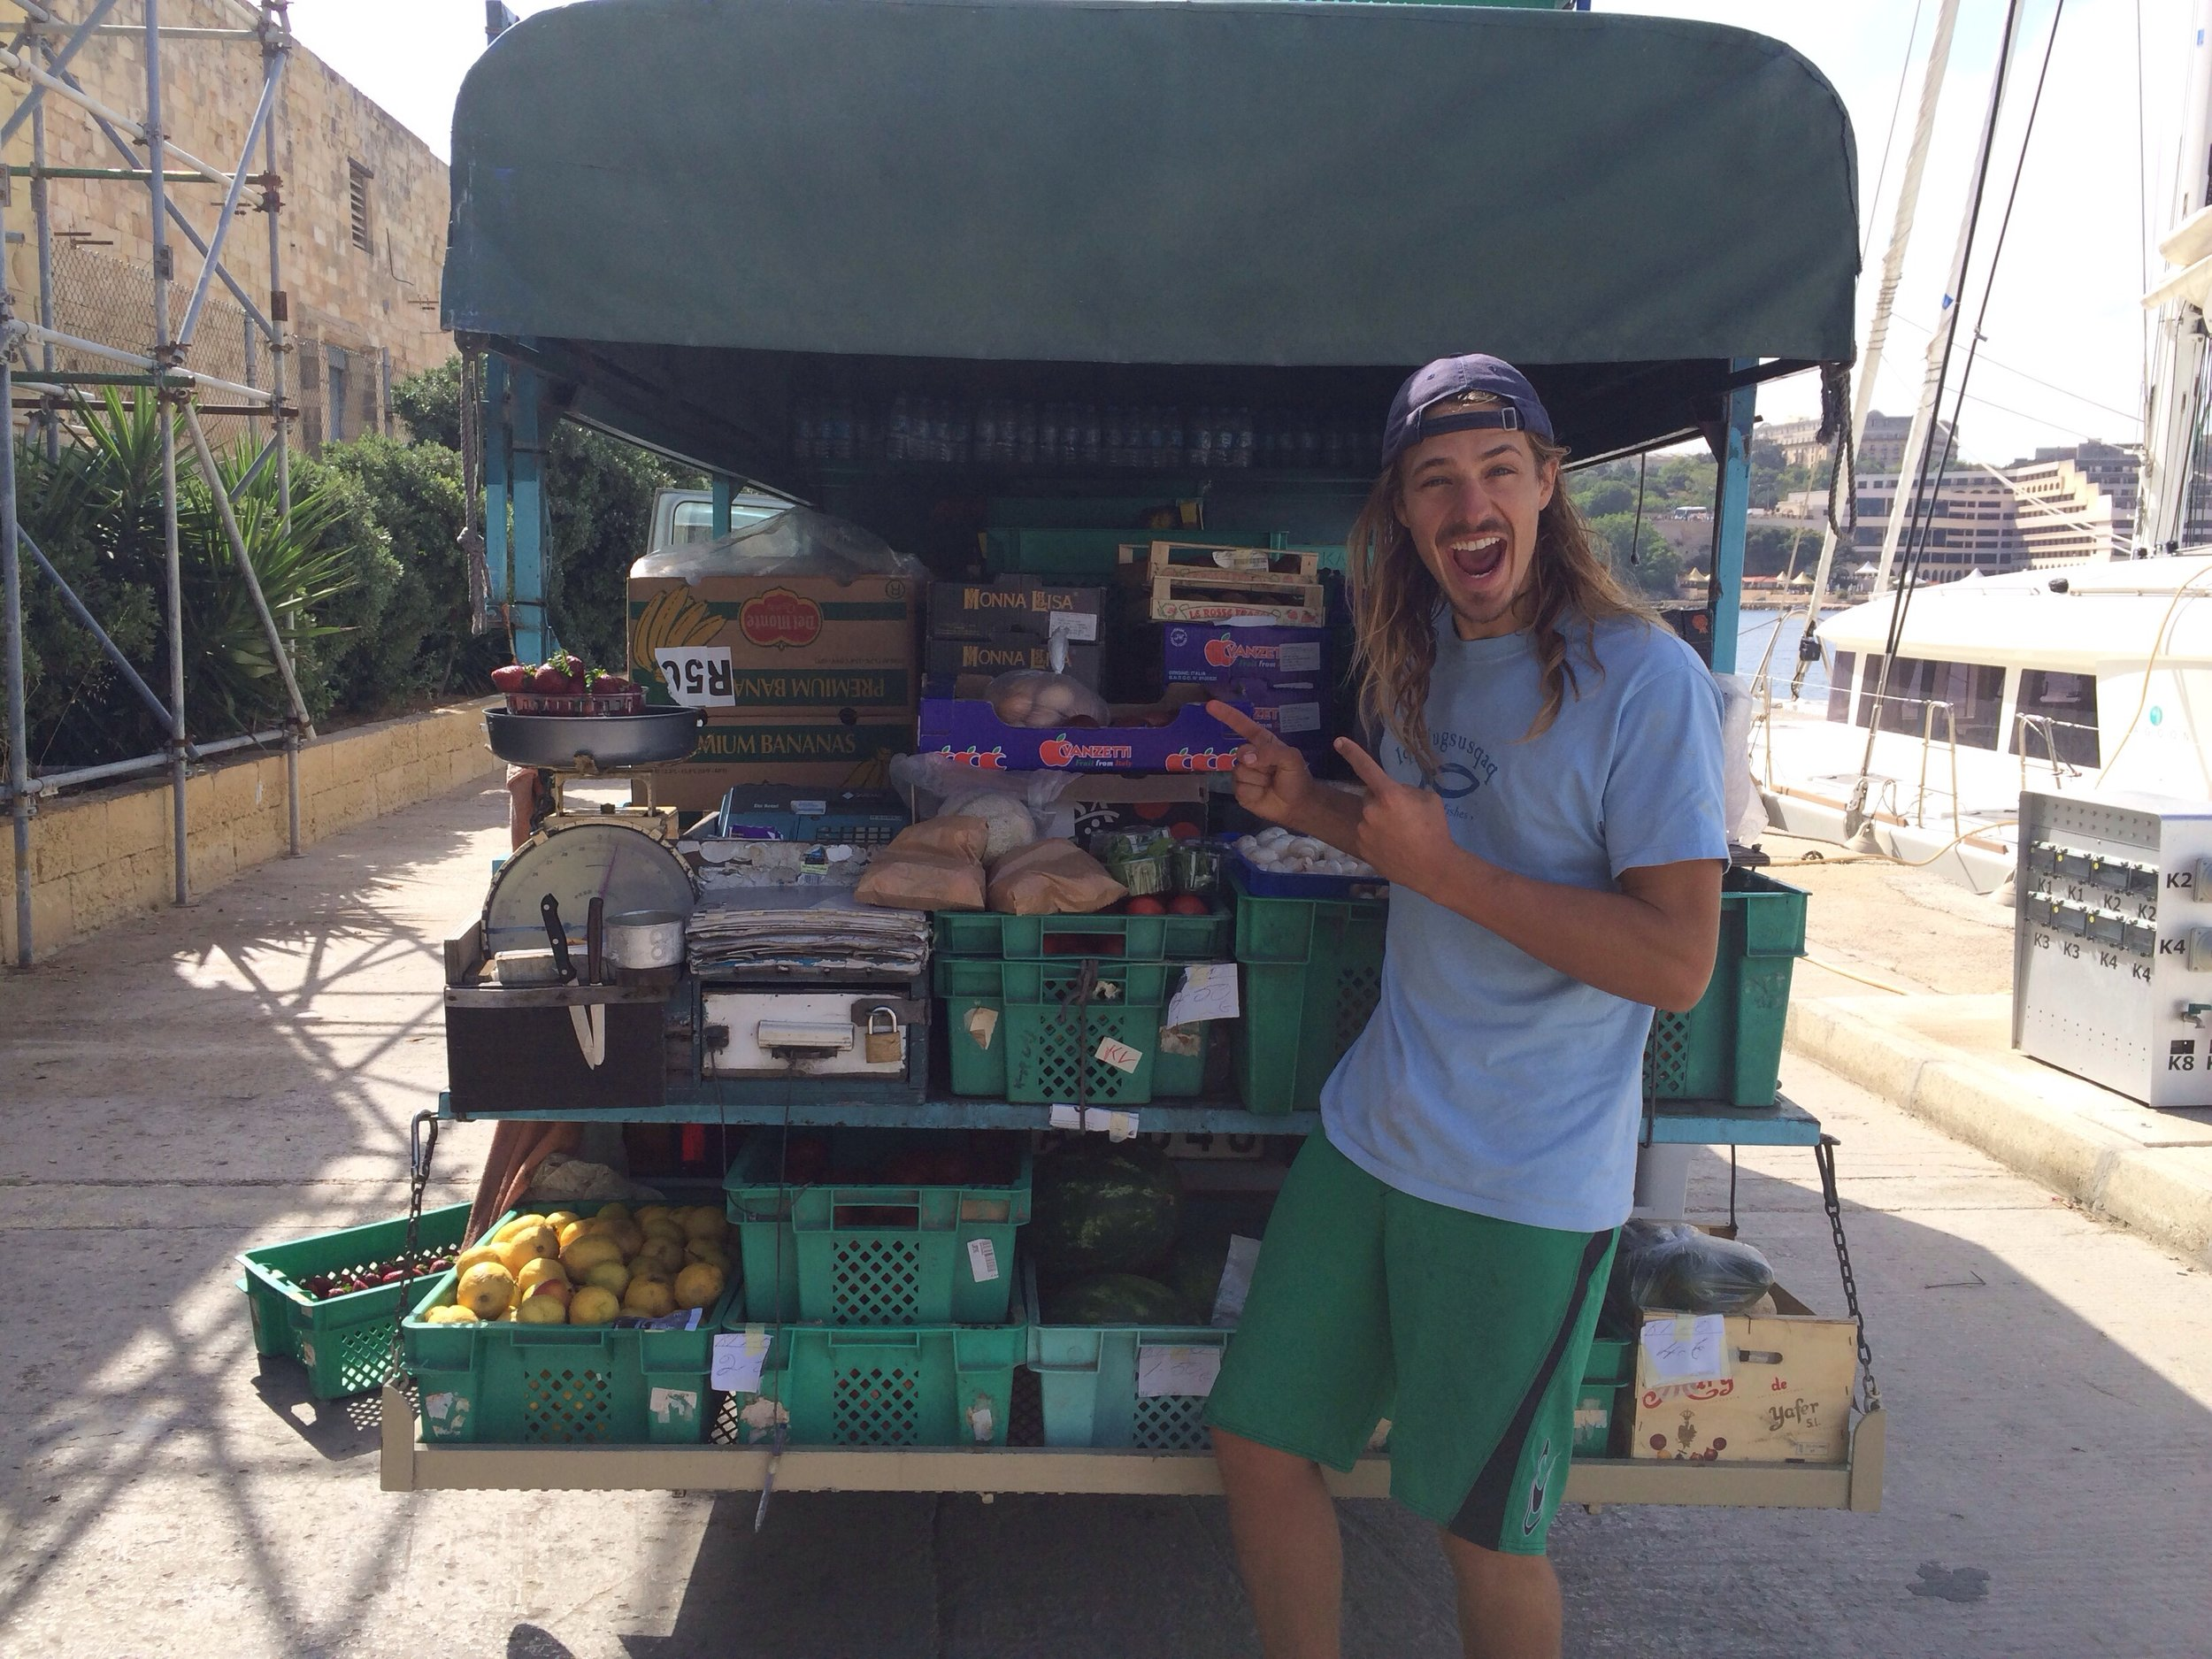 Tyler provisioning for the sail to Gibraltar. Pablo drove up to the boat with his truck full of fresh produce from his farm.